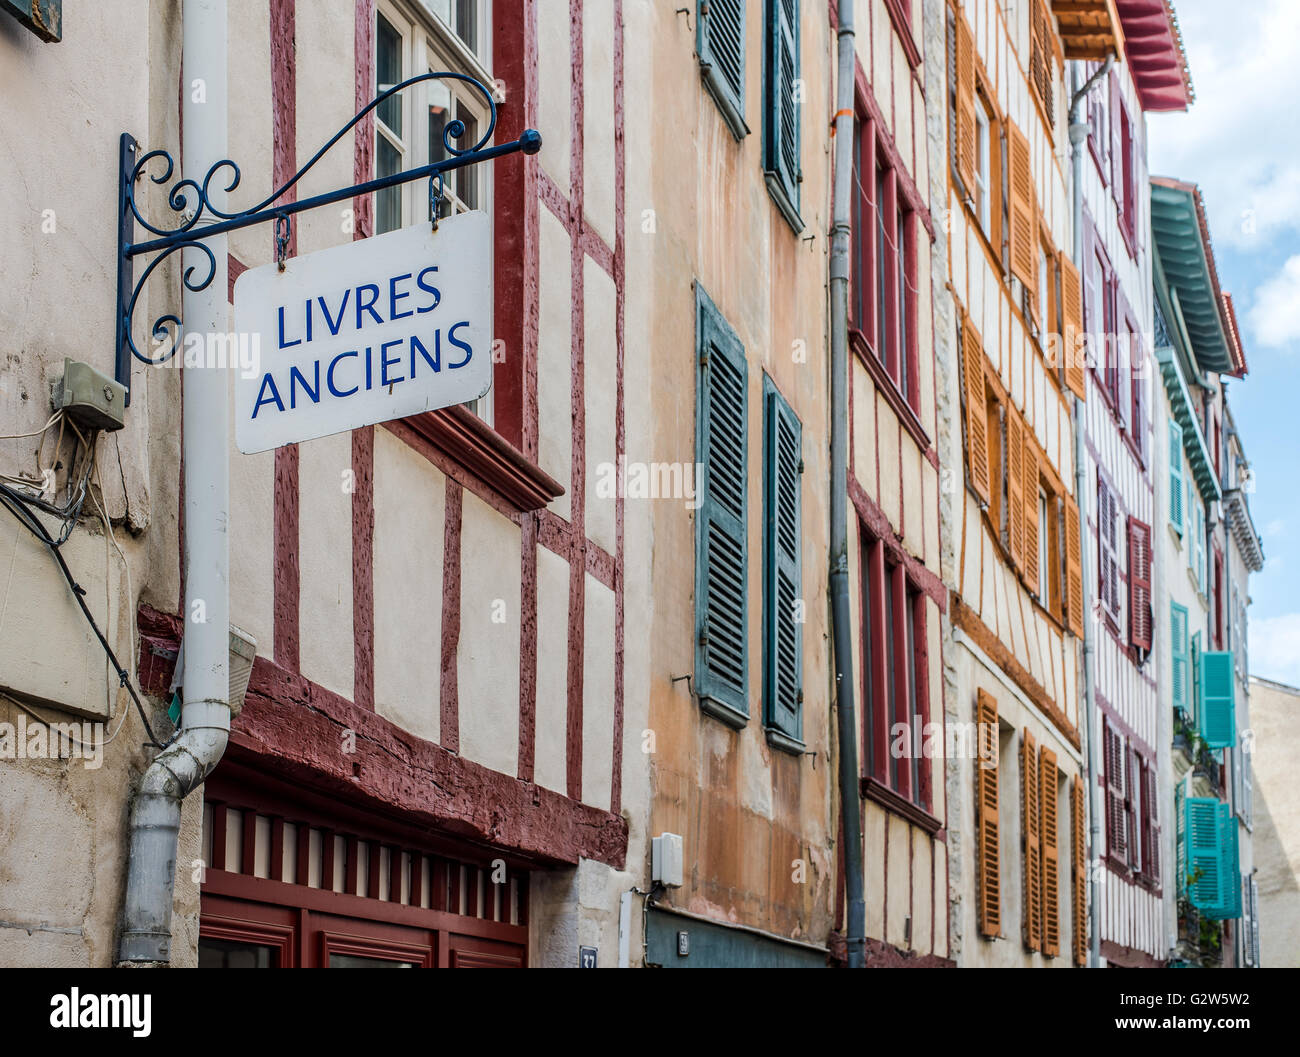 Antique books, in french, signboard in a facade of typical building of Aquitaine. Bayonne, Franc - Stock Image